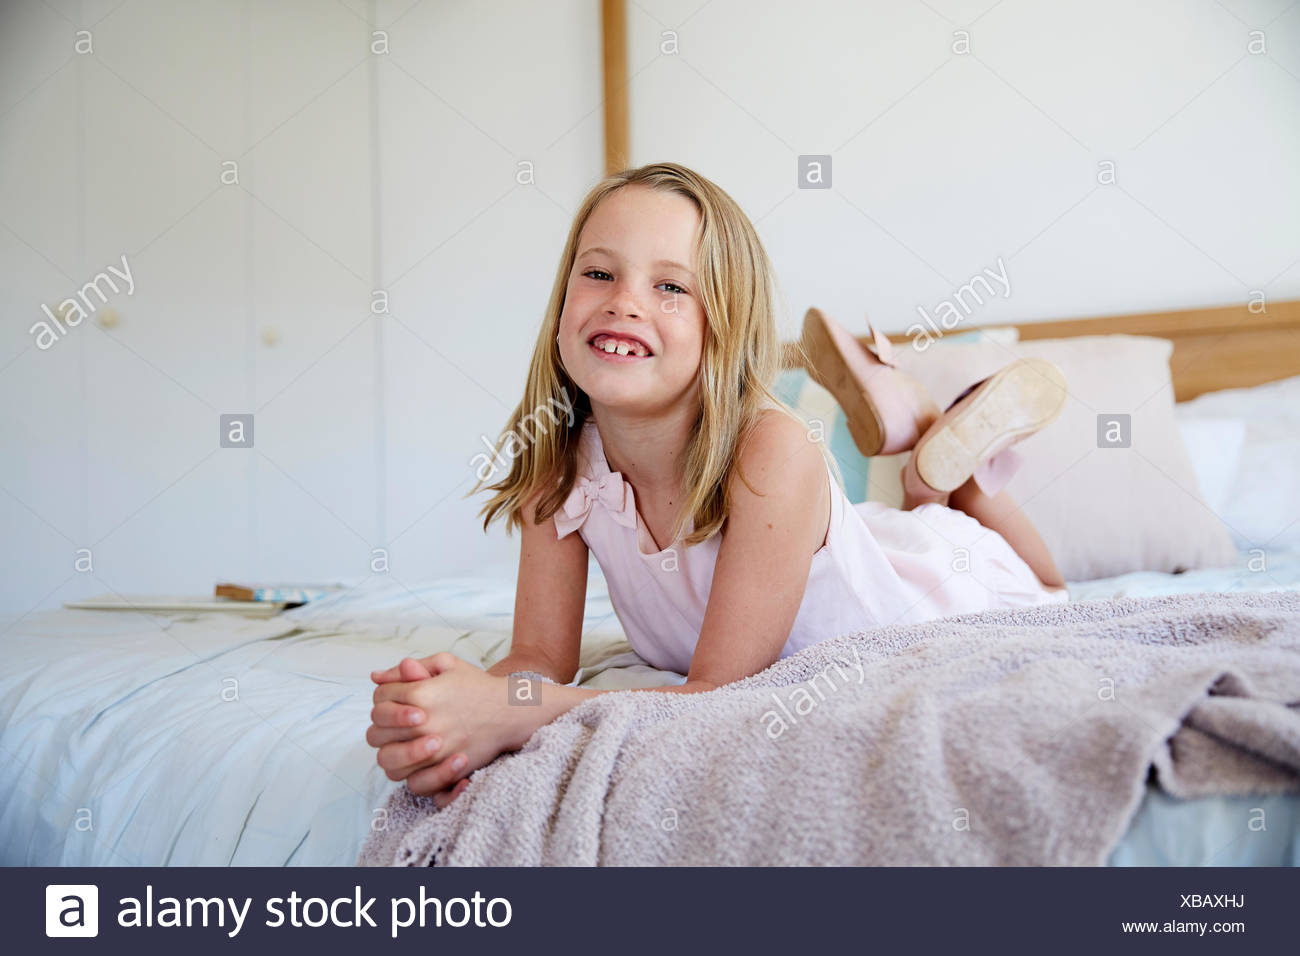 Awesome Portrait Of Smiling Little Girl With Tooth Gap Lying On Bed Interior Design Ideas Clesiryabchikinfo